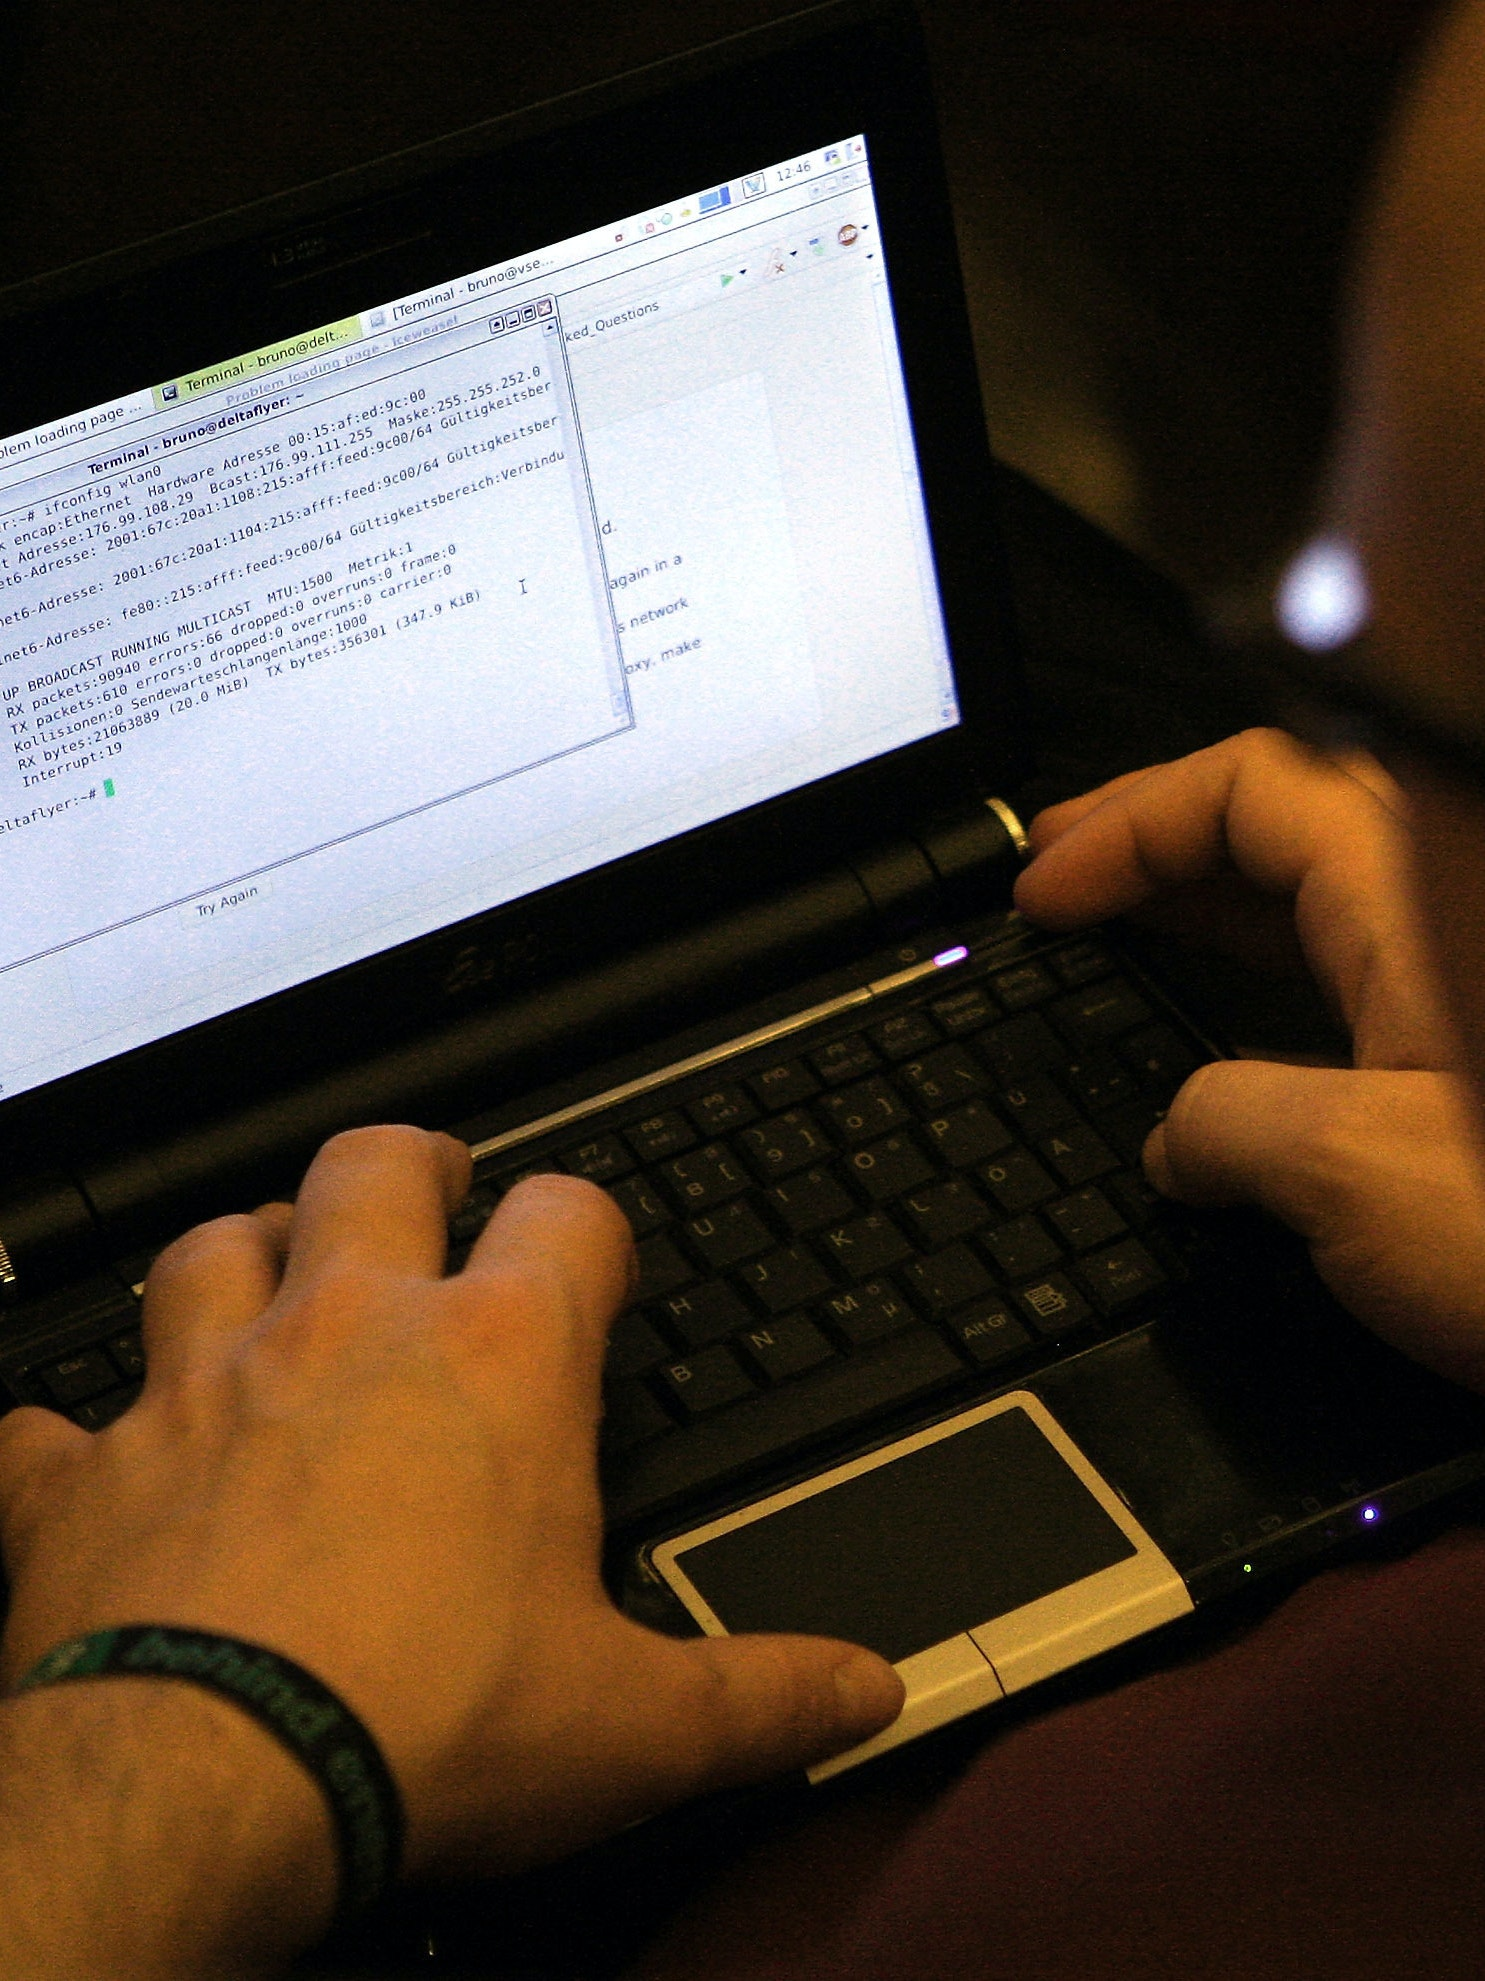 BERLIN, GERMANY - DECEMBER 27:  A participant looks at lines of code on a laptop on the first day of the 28th Chaos Communication Congress (28C3) - Behind Enemy Lines computer hacker conference on December 27, 2011 in Berlin, Germany. The Chaos Computer Club is Europe's biggest network of computer hackers and its annual congress draws up to 3,000 participants.  (Photo by Adam Berry/Getty Images)